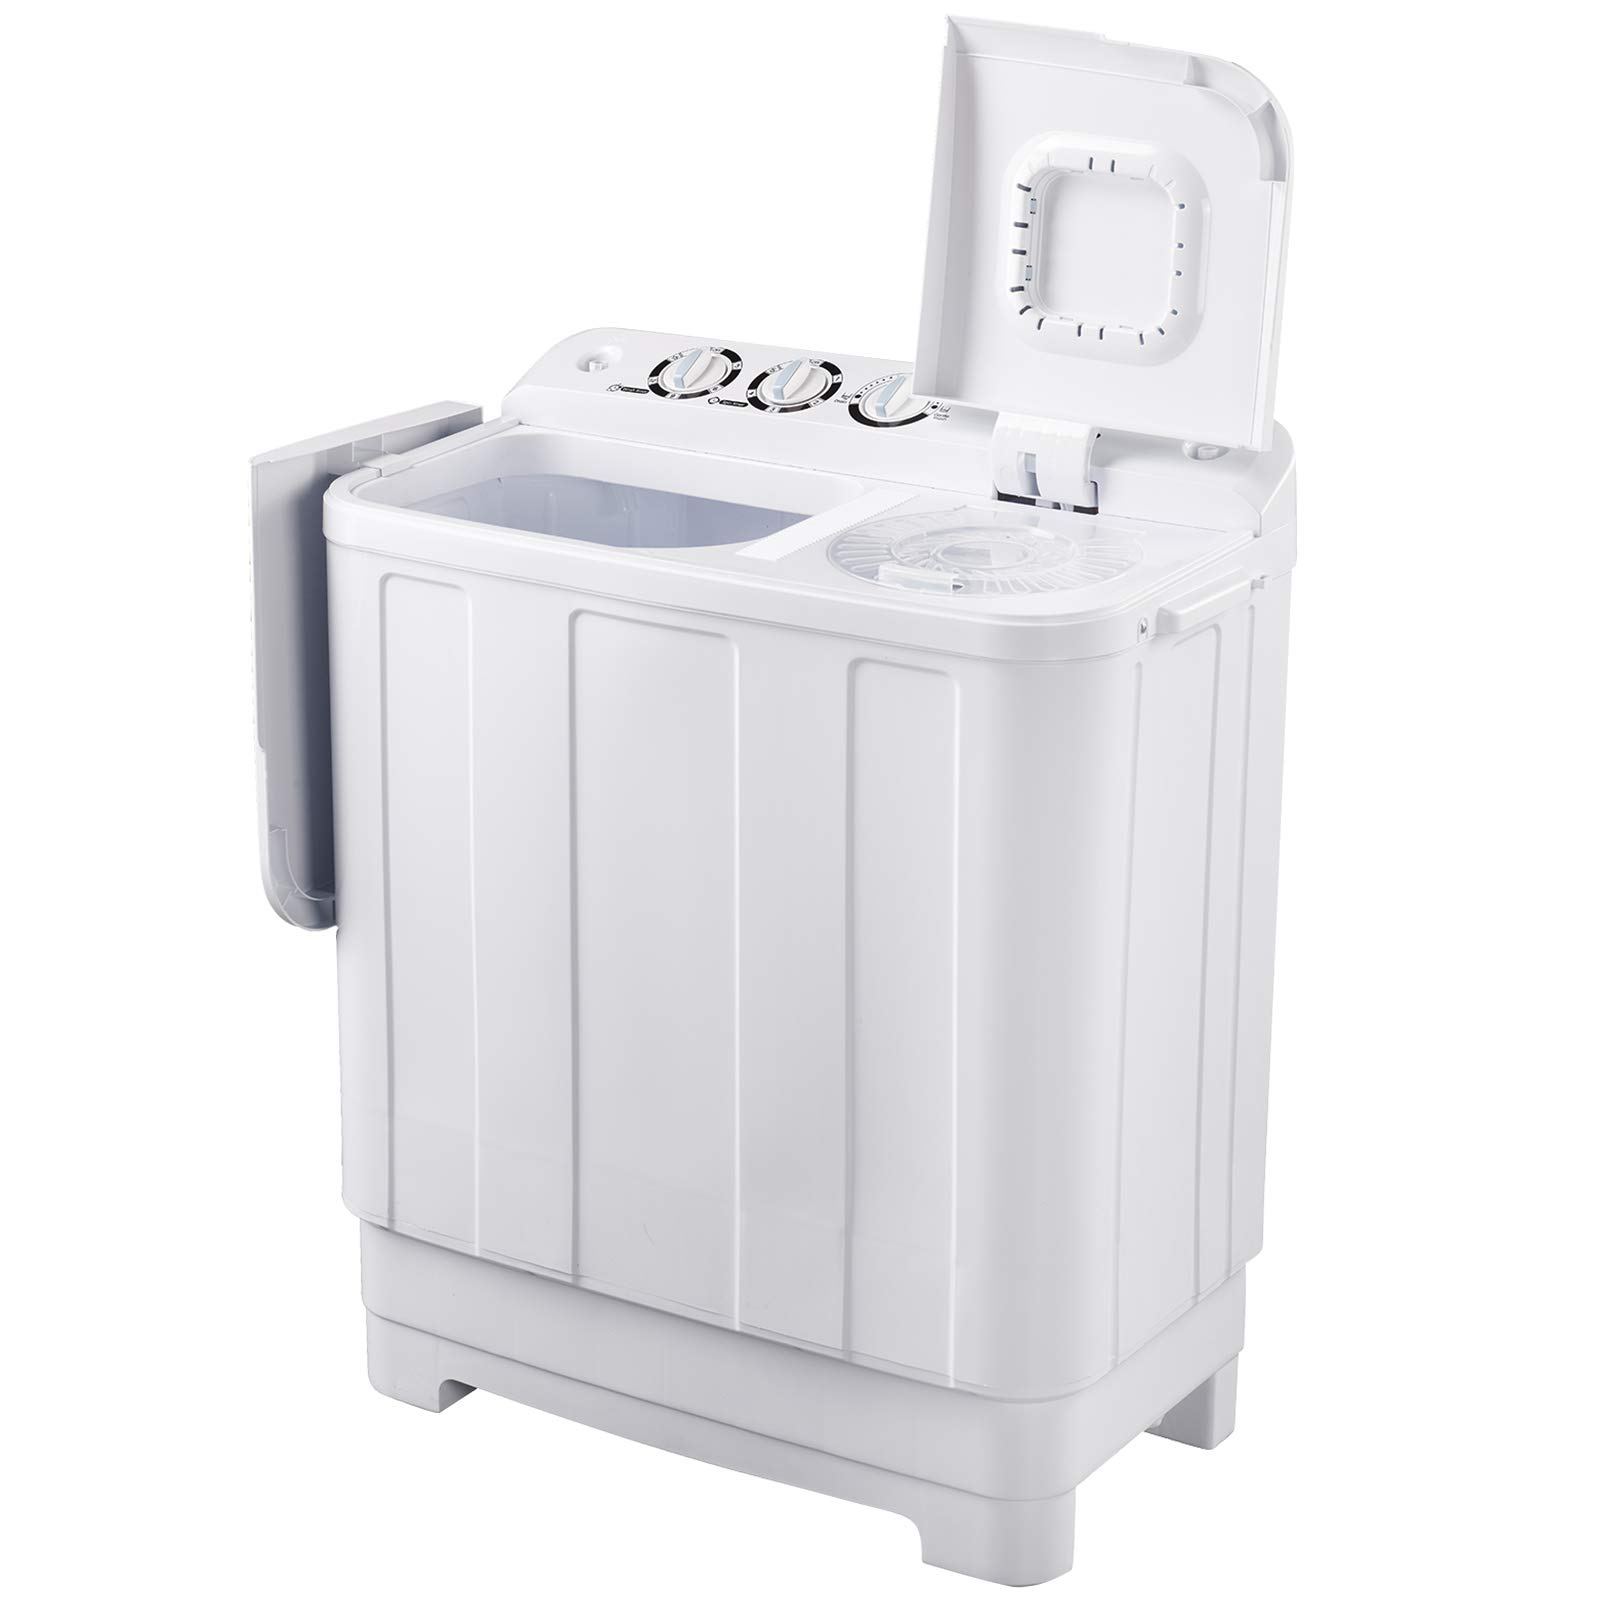 Frifer Twin Tub MIini Washing Machine, Compact Semi-Automatic 15 Lbs Washer and 10Lbs Dryer, Portable Washer Machine with Timer Control for Apartment, Dorms, RVs, Camping, White